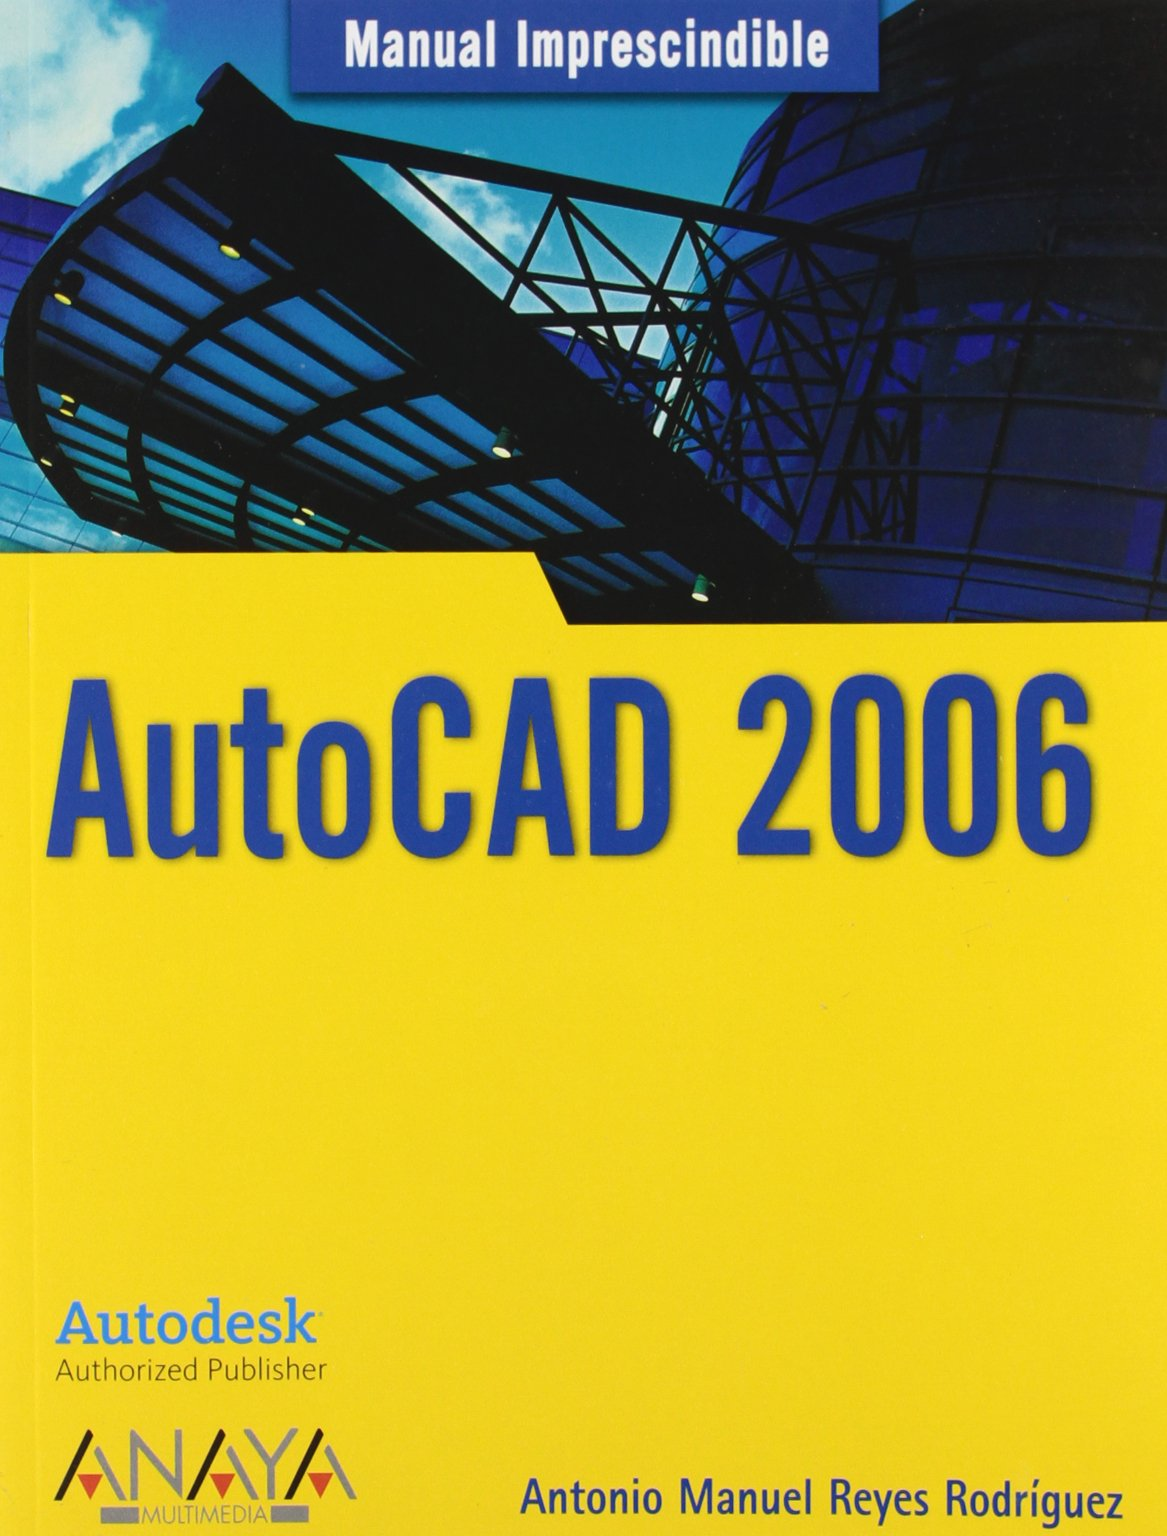 Autocad 2006 (Manuales Imprescindibles / Essential Manuals) (Spanish Edition) PDF